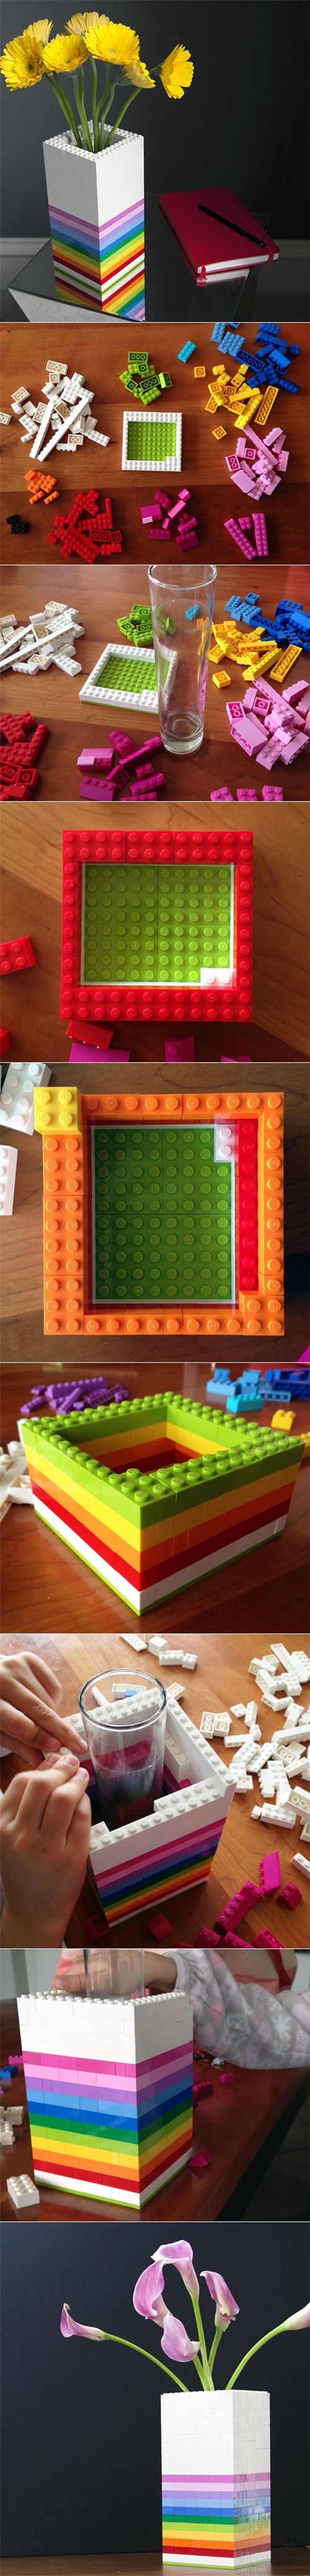 15 Useful Things You Can Build With Your Child s Lego Stash